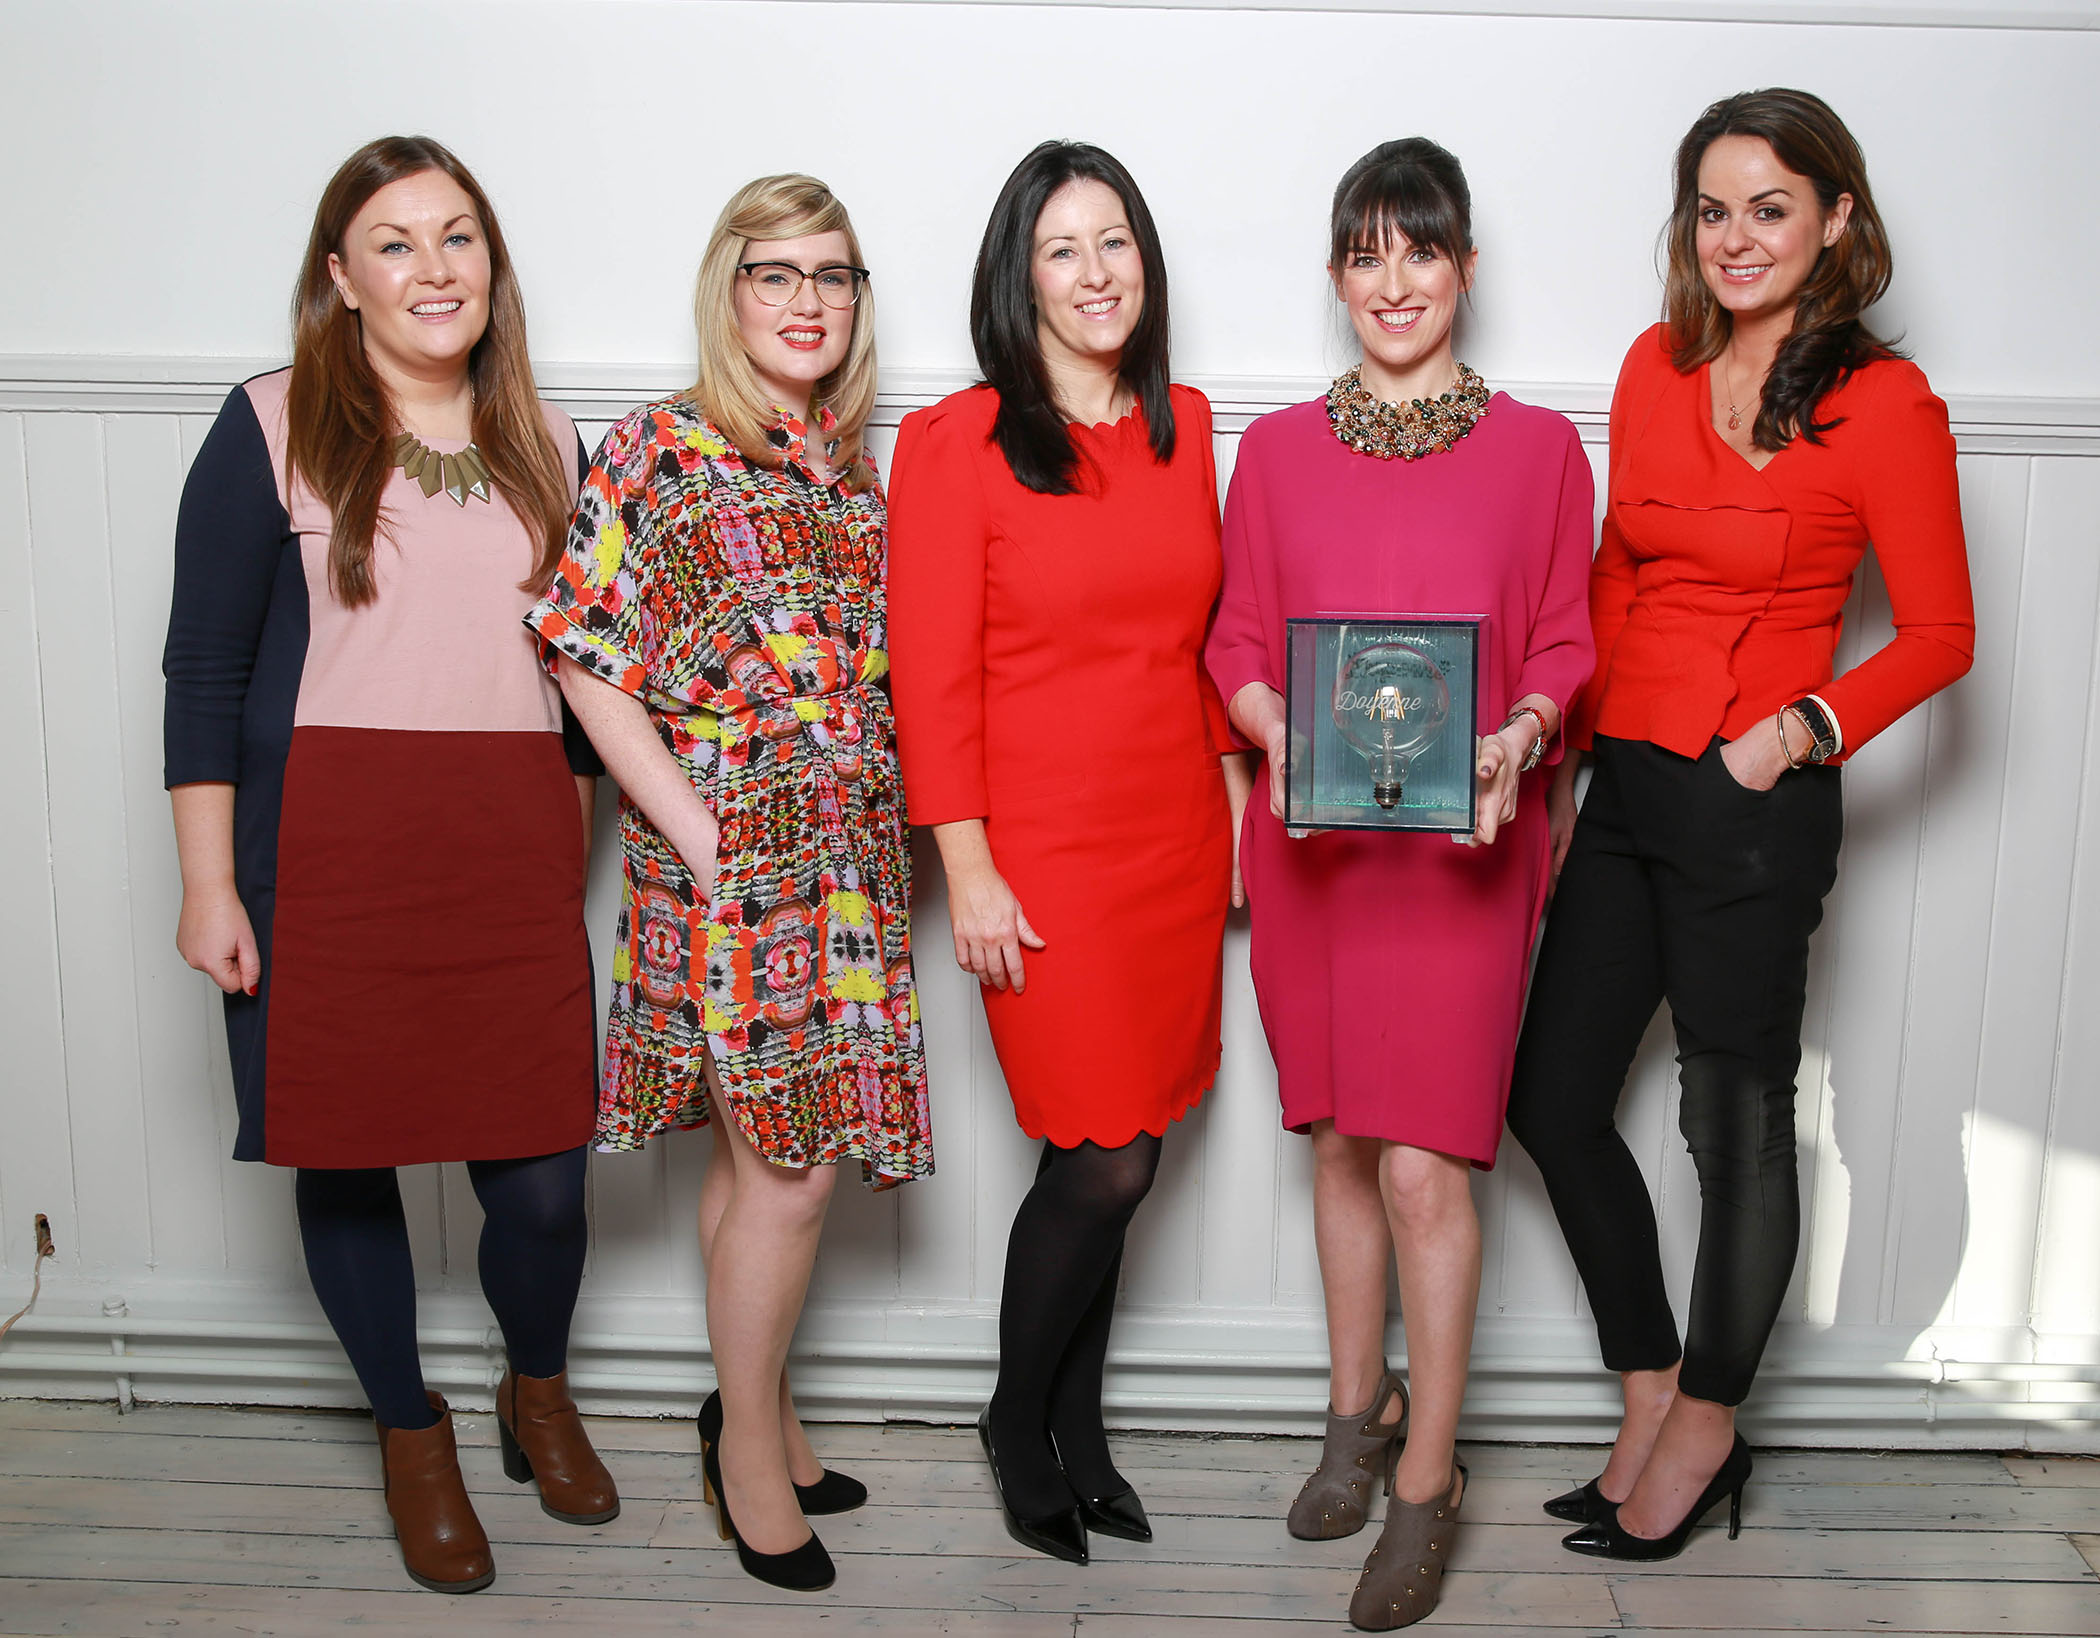 IAPI (Institute of Advertising Practitioners) this morning hosted its annual IAPI Doyenne Award breakfast on International Women's Day to mark future female leaders in the Irish advertising industry. Now in its third year, the IAPI (Institute of Advertising Practitioners in Ireland) Doyenne Award recognises women leaders working in advertising, media sales and PR .The initiative runs as part of the many international events for International Women's Day and puts the spotlight on gender imbalance in an industry where just 13% of women from IAPI member agencies are at senior management level. Pictured is Meabh Connellon, Sharon Murray, Michelle O Keefe, IAPI Doyenne Award winner Cera Ward and Astrid Brennan. ***NO FEE*** Photography: Conor Healy Photography ENDS For more information on the IAPI Doyenne Award visit www.iapi.ie Twitter handle: @IAPI_Updates #changethestats For more information contact:  Ailbhe Garrihy or Leona McDaid Email: ailbhe@thereputationsagency.ie or leonamcdaid@gmail.com  01 661 8915/ 0861381757